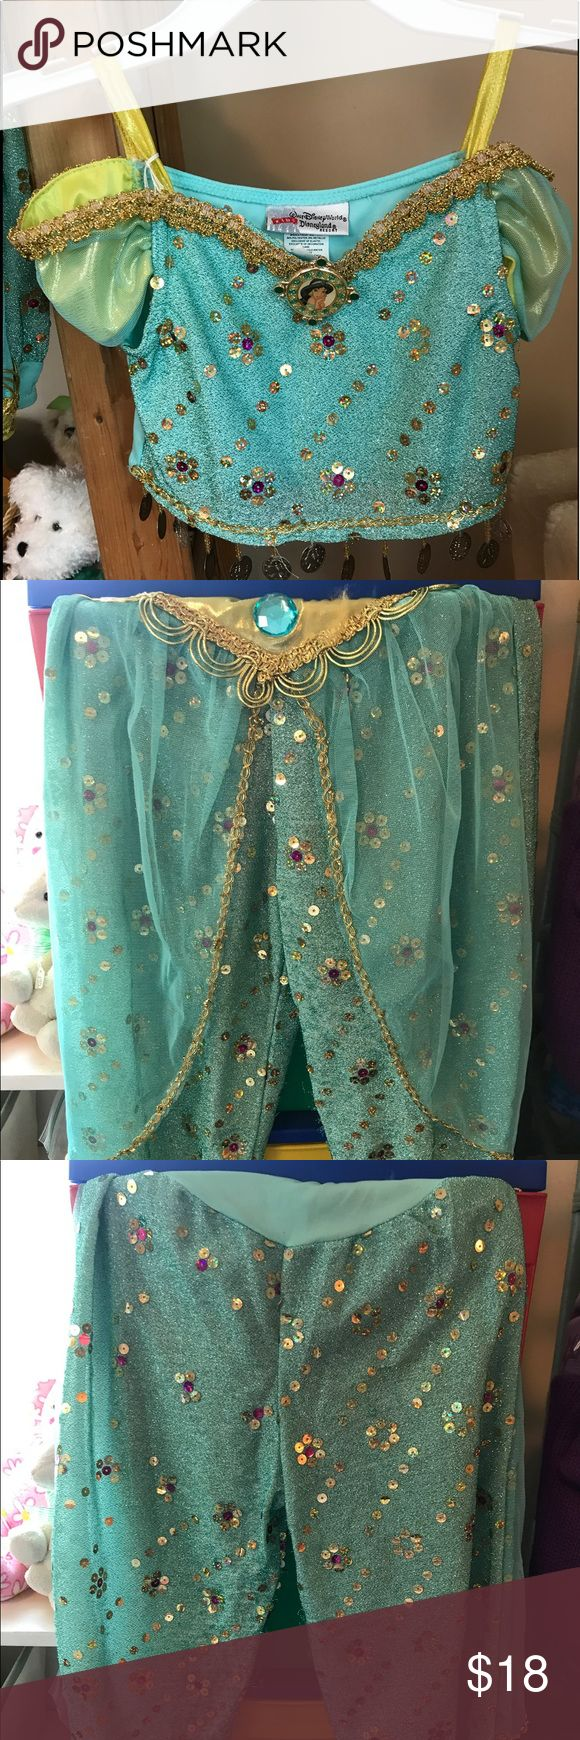 Kids Disney Jasmine Costume This kids Walt Disney world - Disneyland Resort Jasmine costume is just the top and bottom of the costume (I do not have the shoes, wig, or purse) and it's in excellent condition! Kids Walt Disney World Costumes